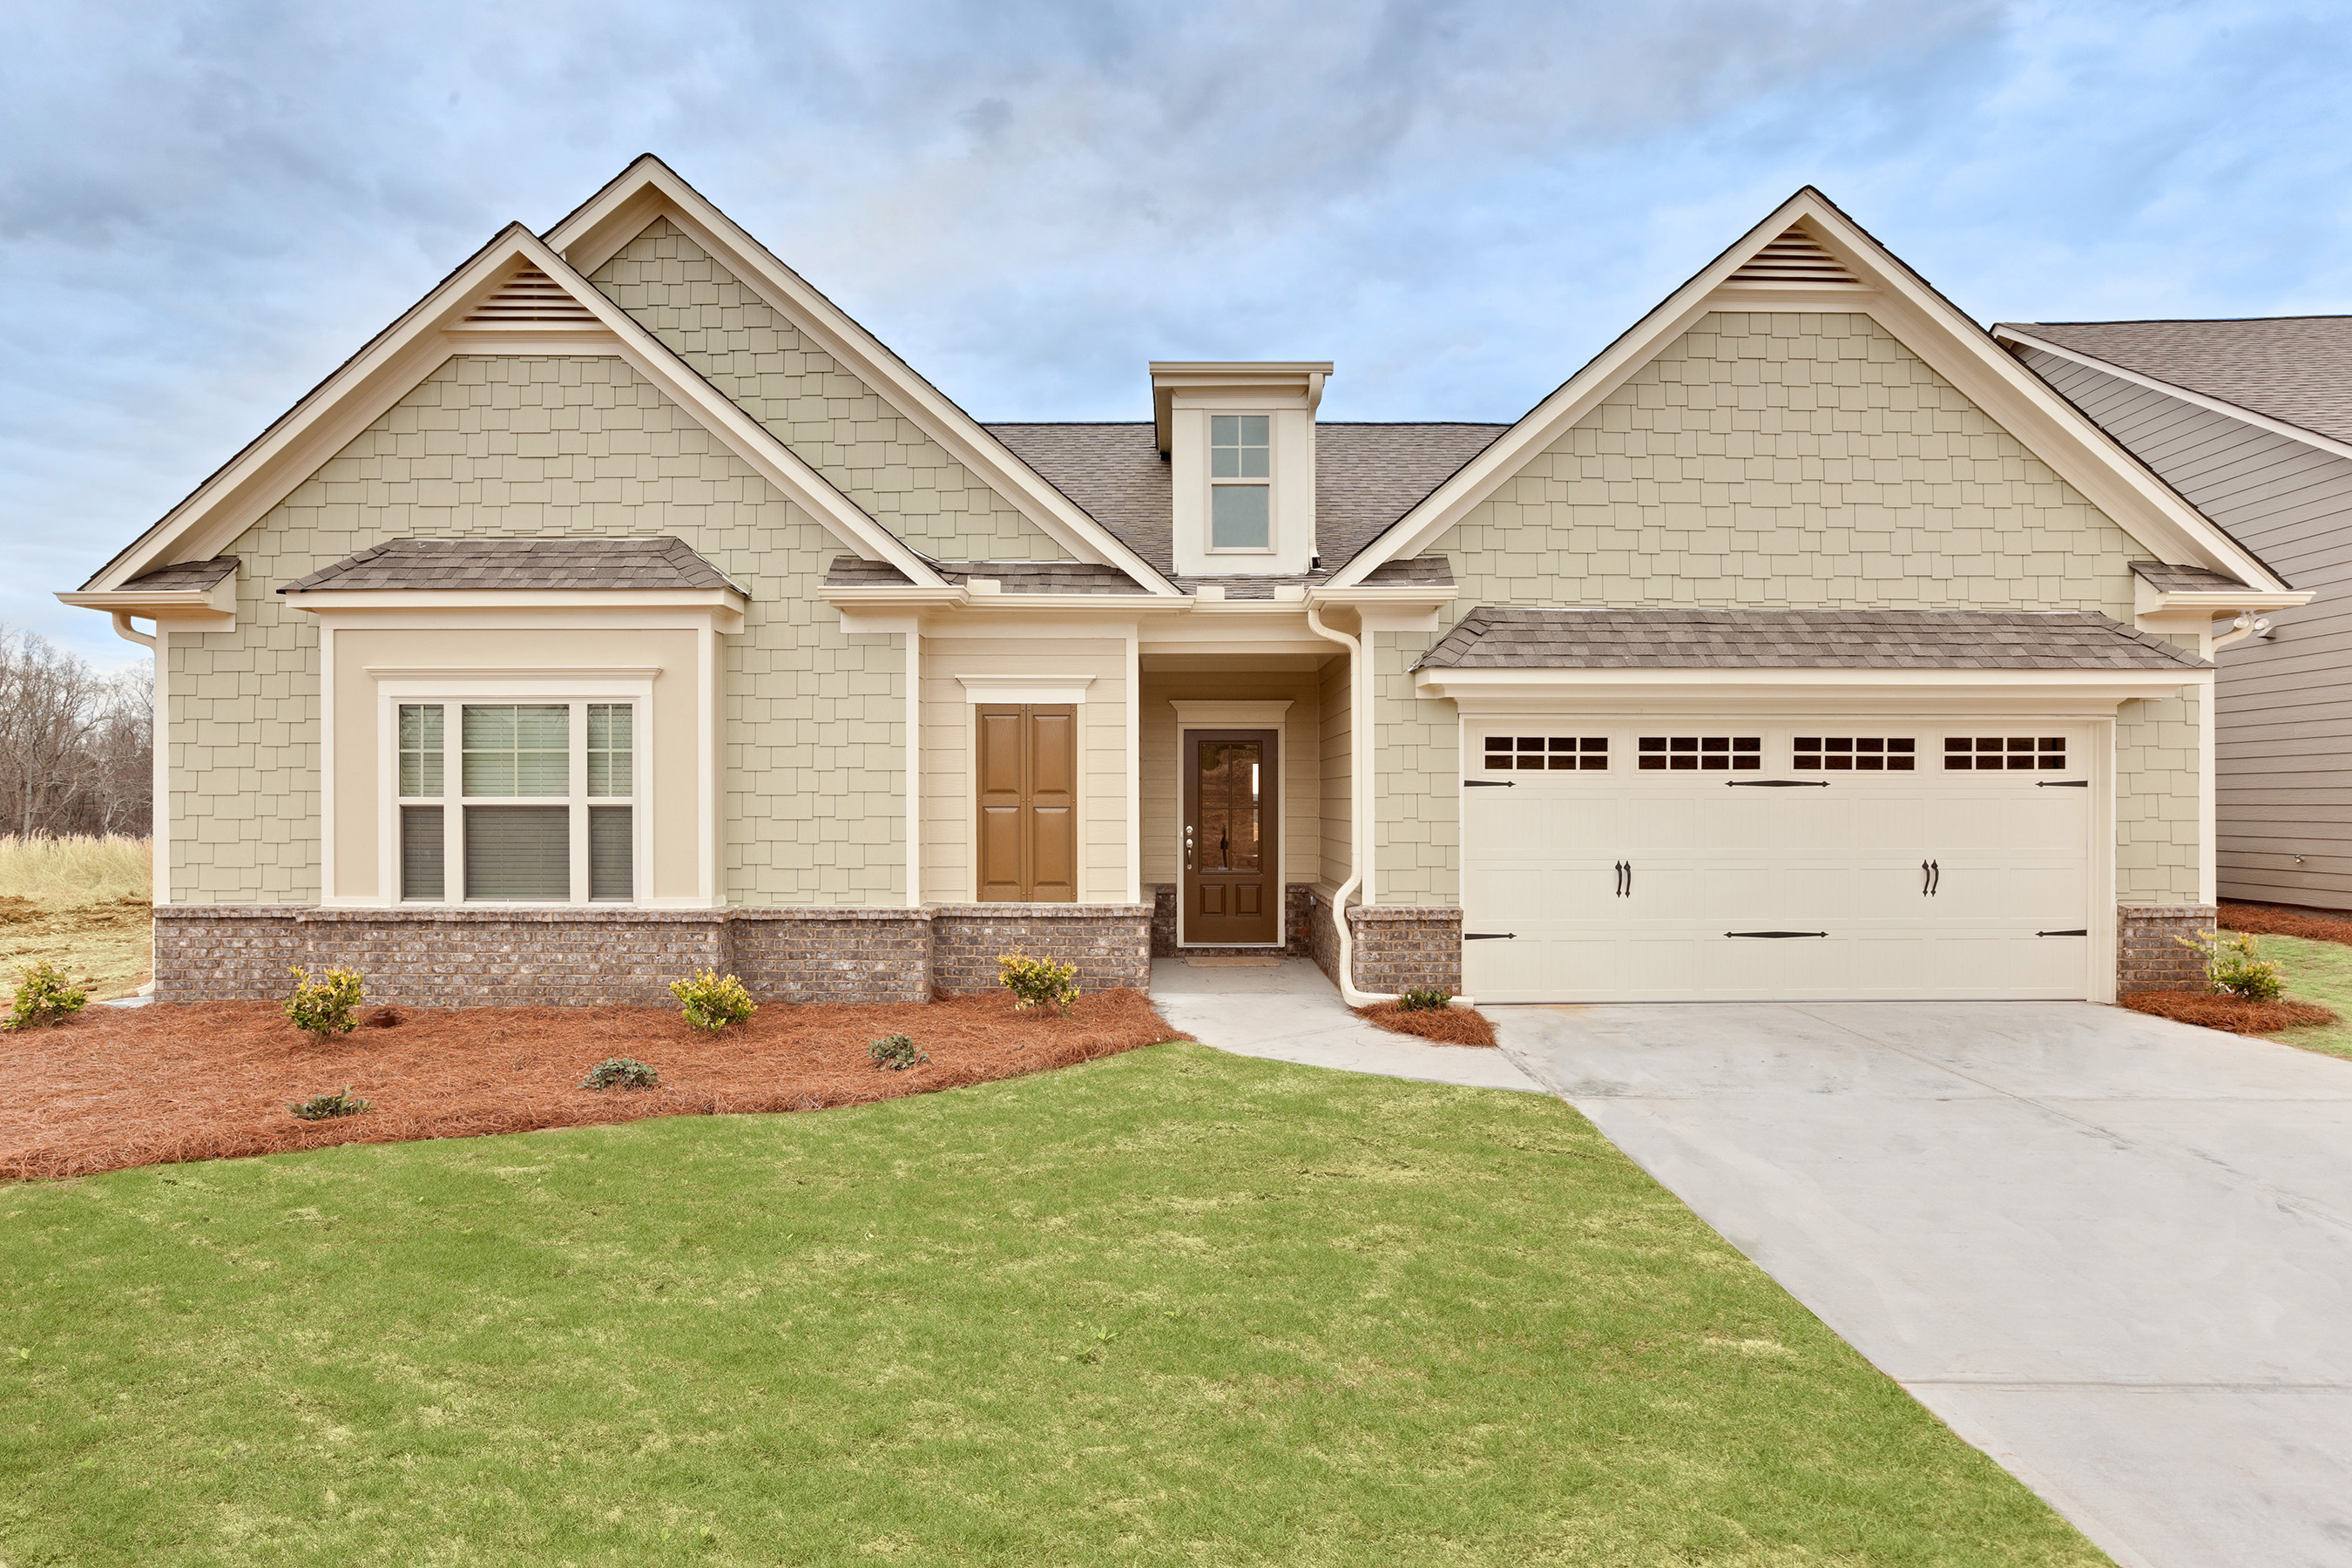 Clayton is already building site-built homes in the Atlanta area, like the one shown here.